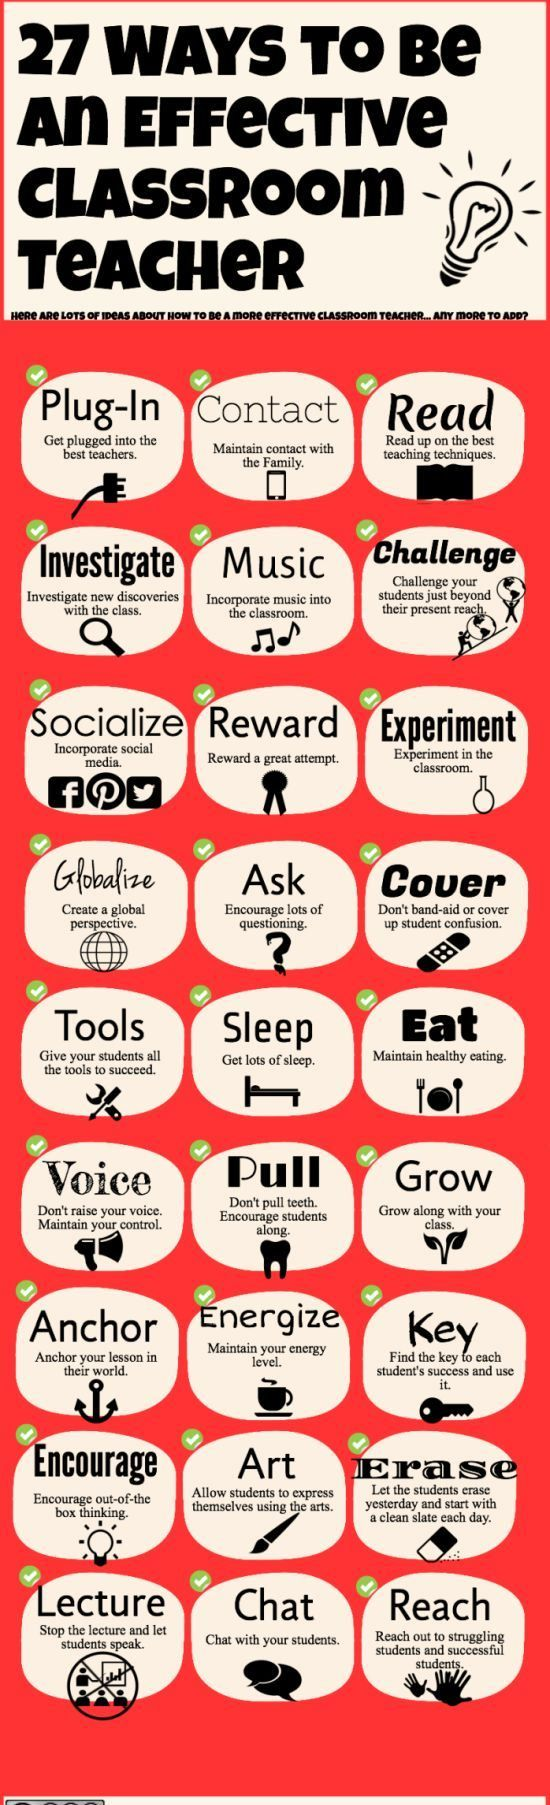 A great way for every #teacher to be an effective teacher, which of these guidelines would you say you agree with most?